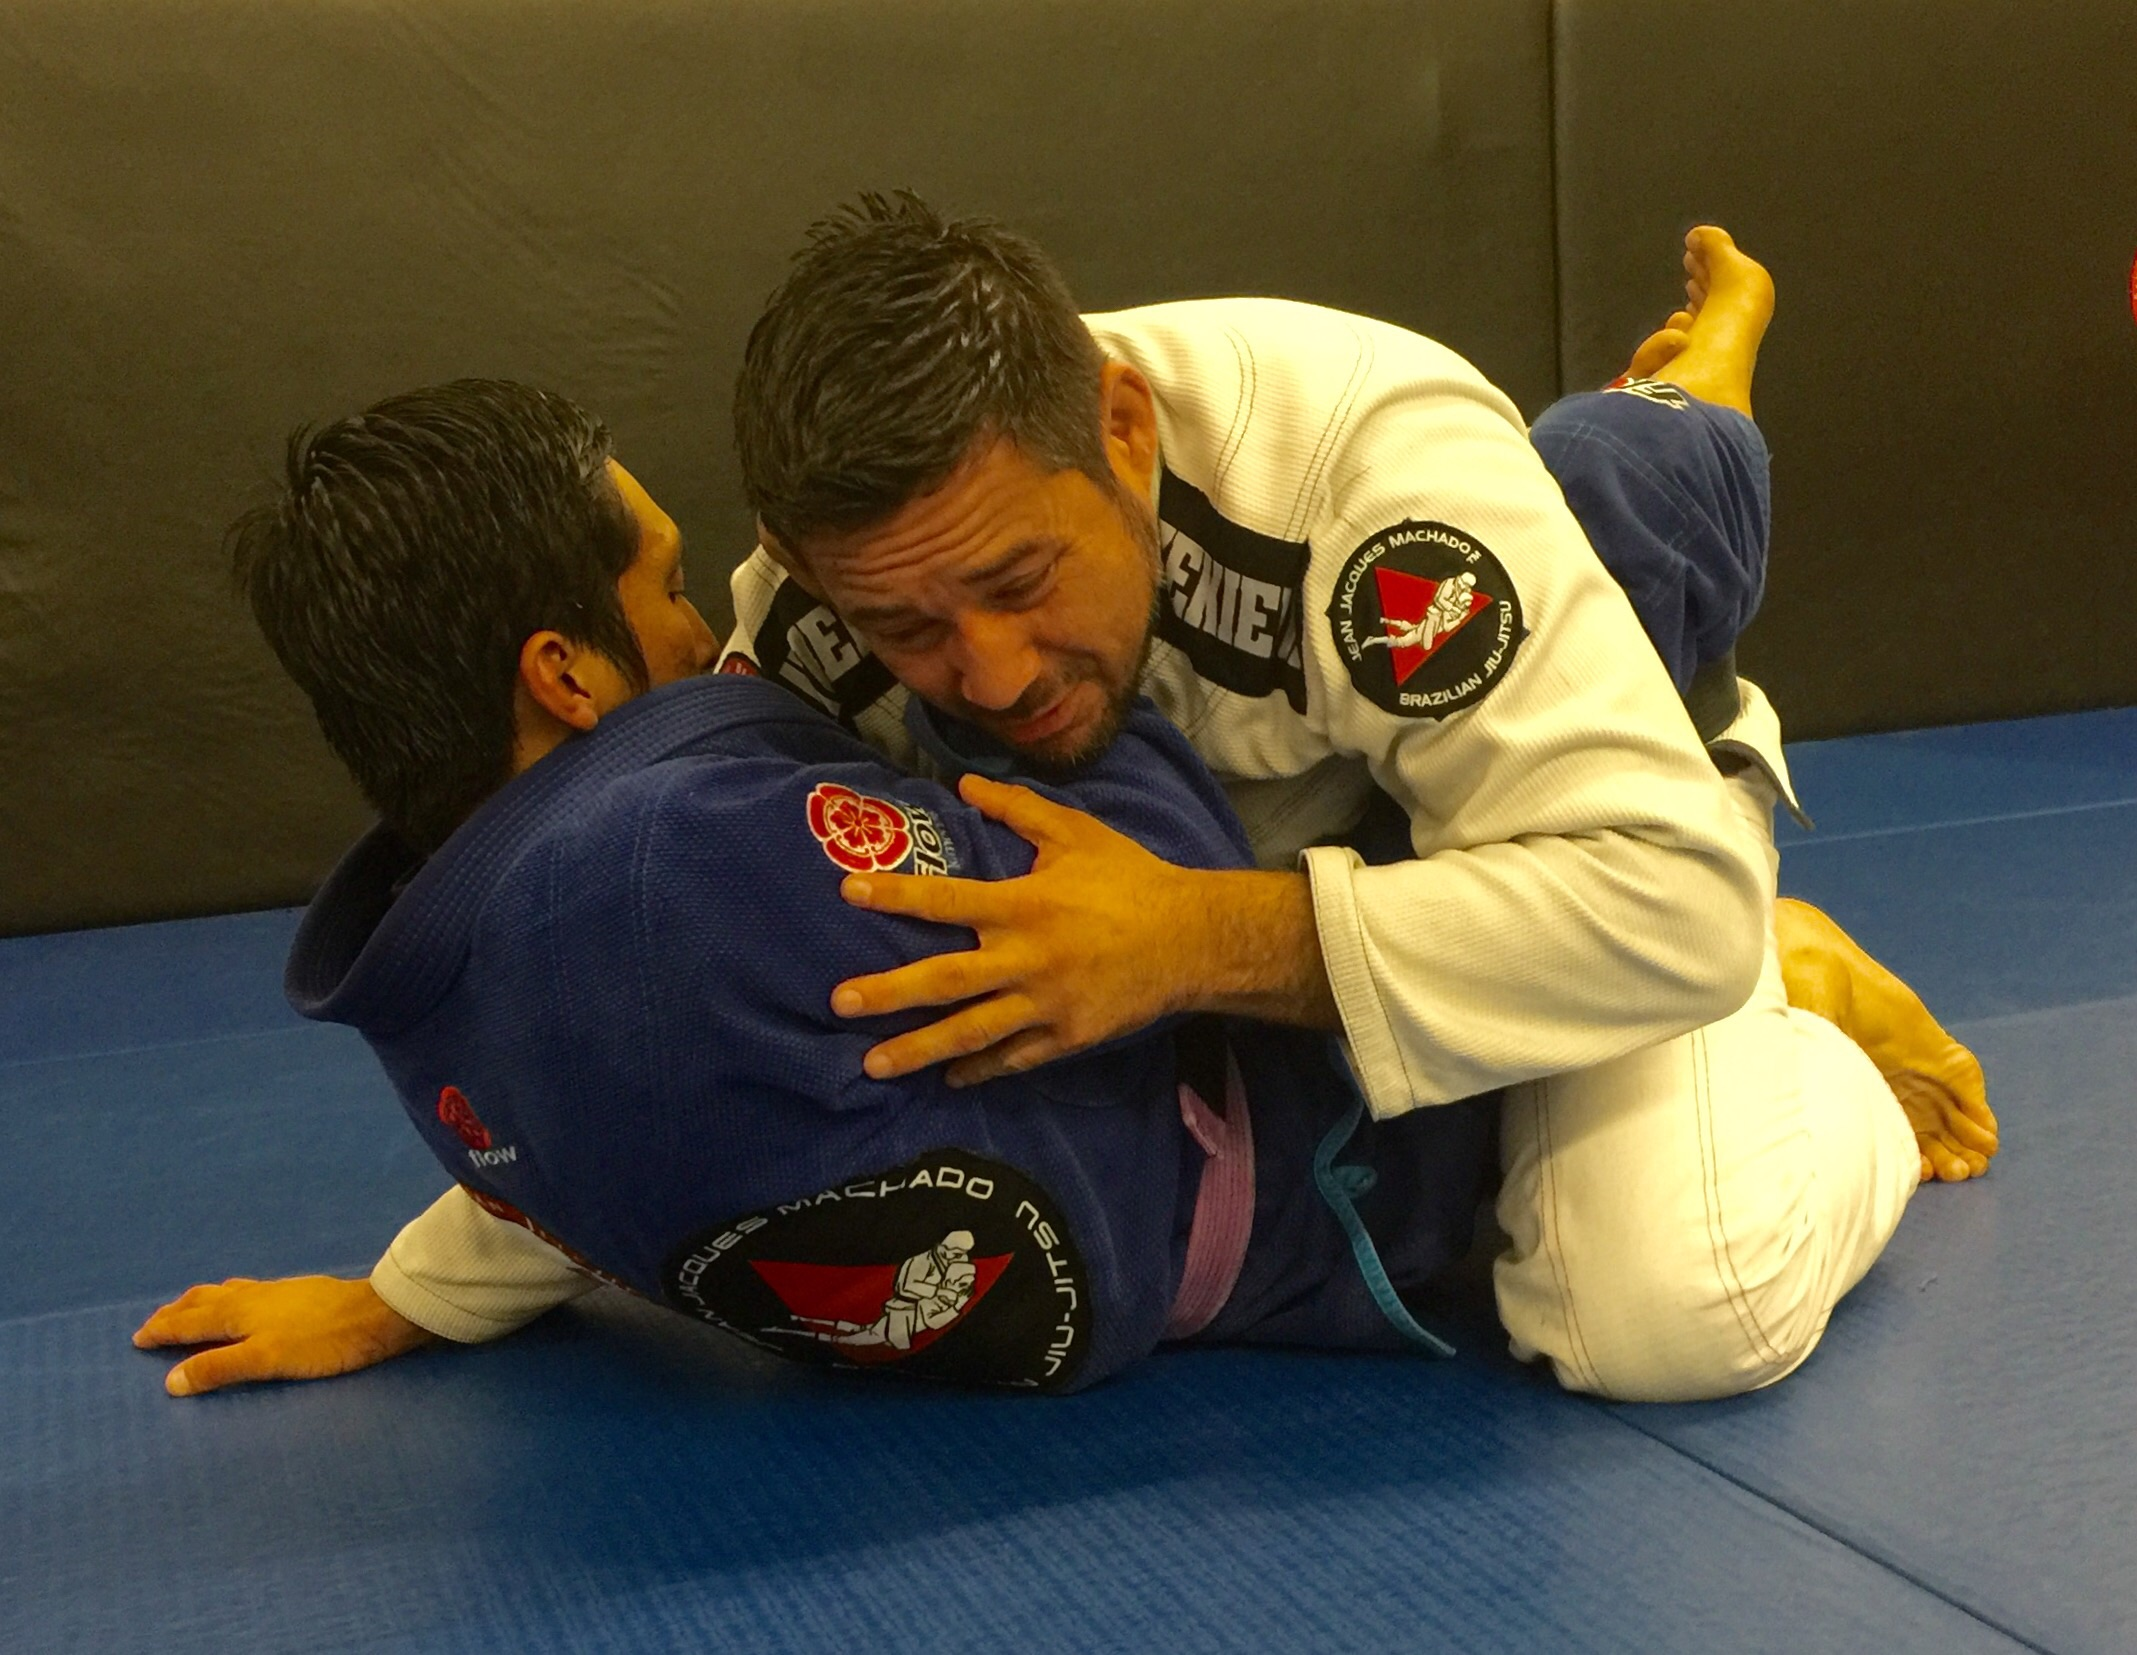 Caught in the trap! A Cross choke with your arm overhooked.